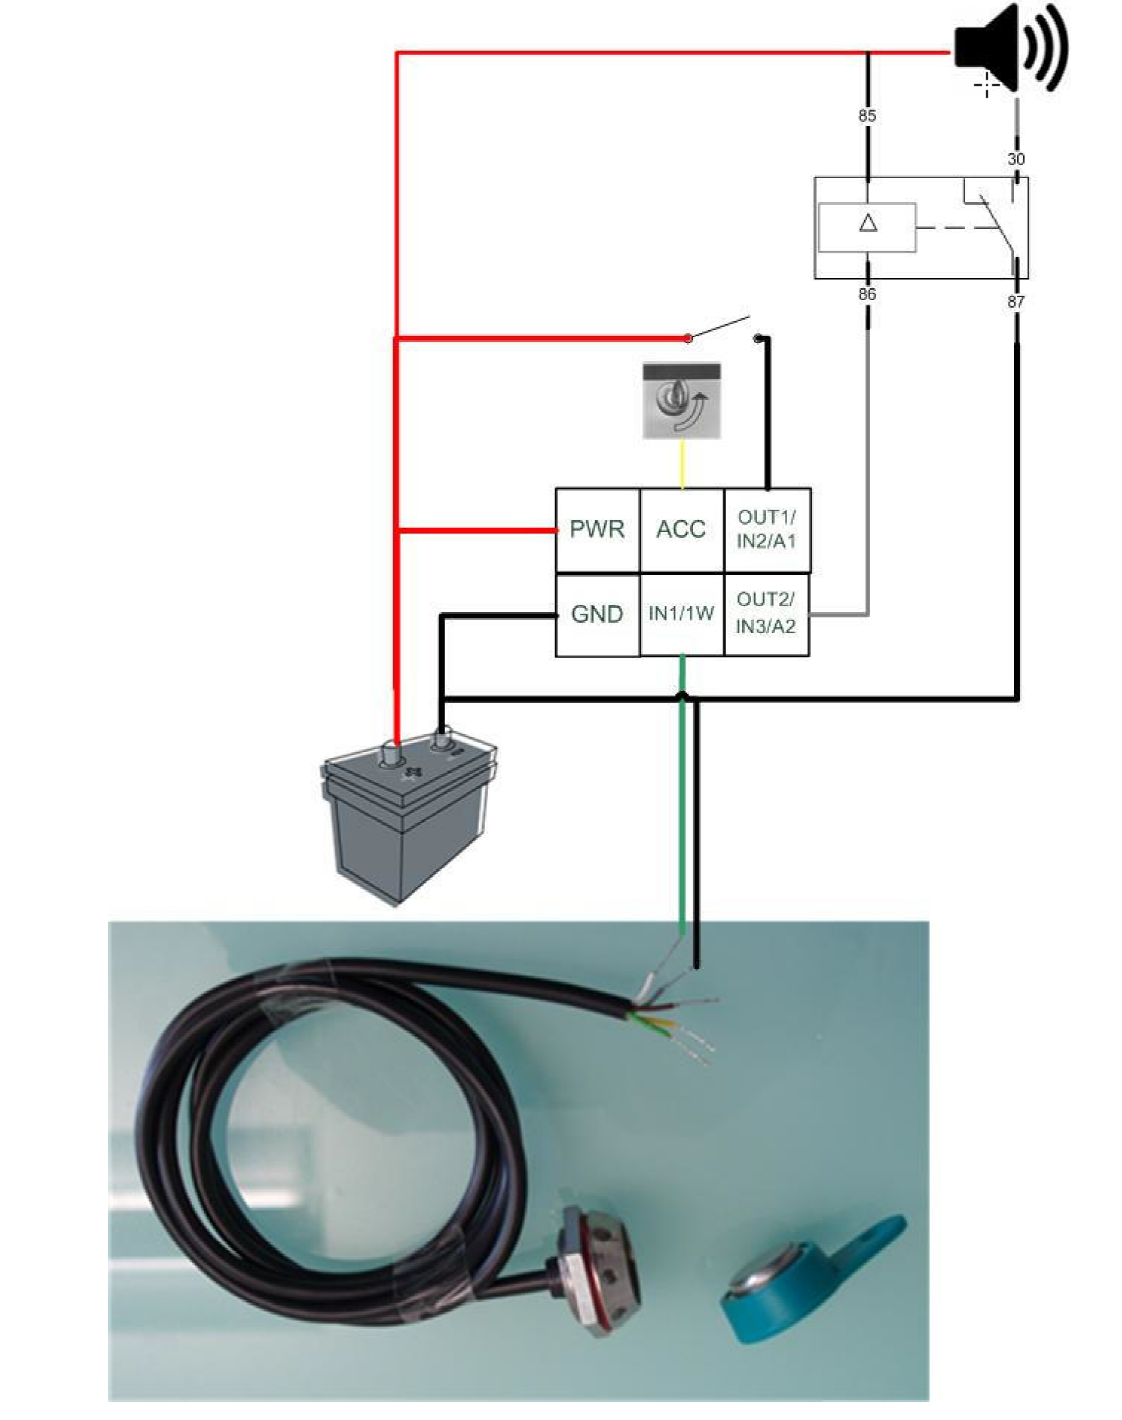 image2015 5 12 14%3A5%3A12?version=1&modificationDate=1431432359069&api=v2 gps dynamic einbauanleitung ak1 Basic Electrical Wiring Diagrams at couponss.co